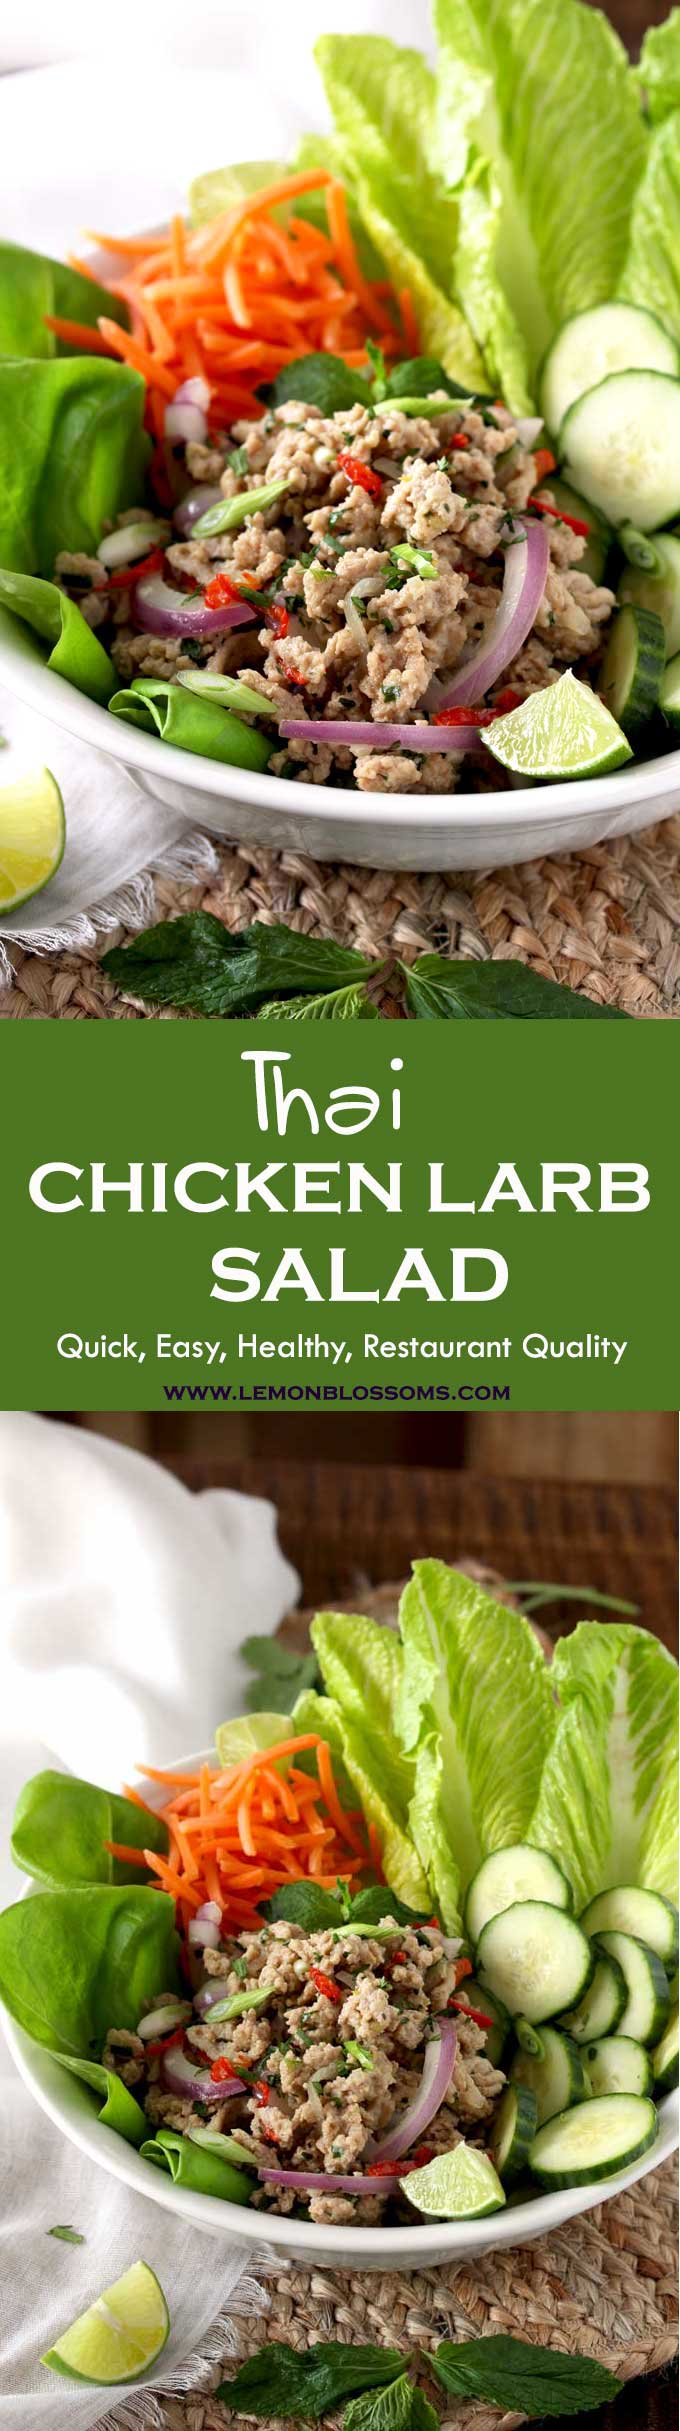 This Thai Chicken Larb Salad is made with ground chicken, lime juice and fresh herbs. Healthy, fresh, aromatic and super tasty! No need to drive to your favorite Thai restaurant anymore, enjoy this popular and exotic salad at home! #Thai #Salad #Larb #chicken